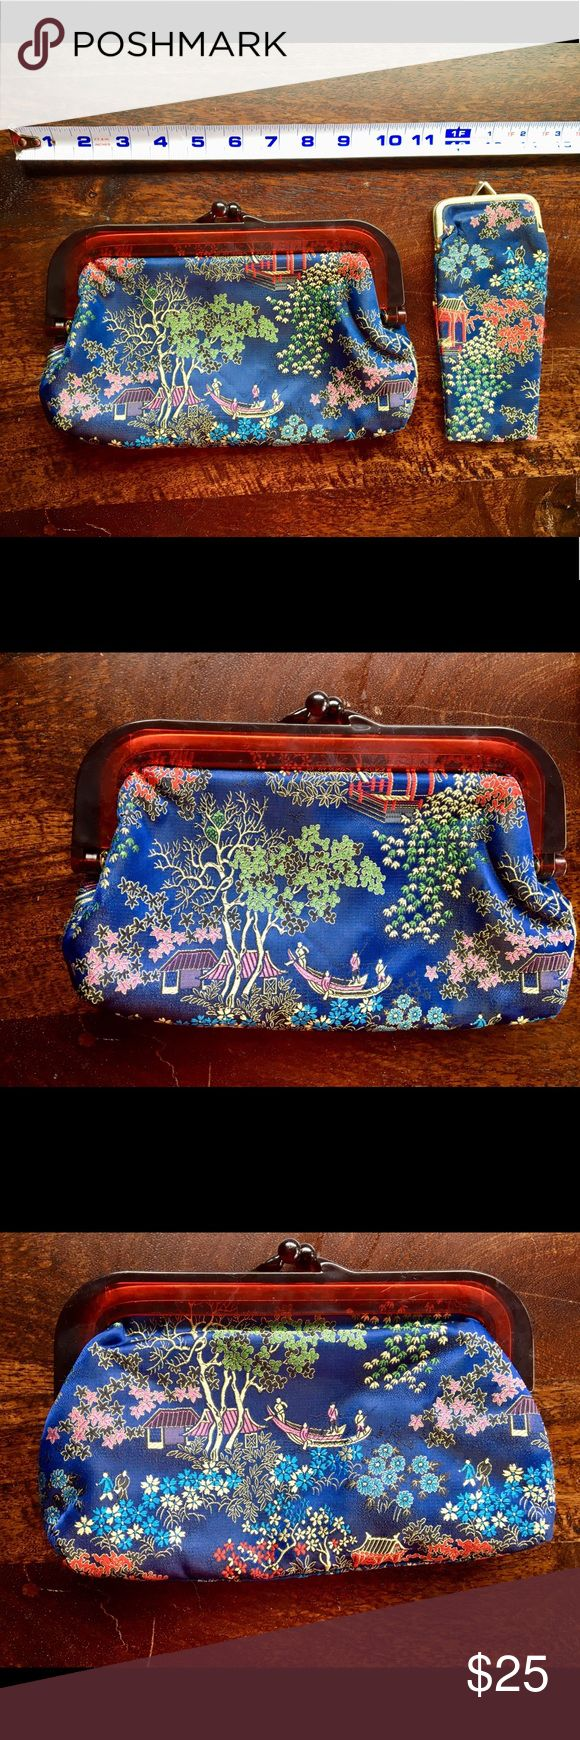 Vintage Asian-inspired Clutch and Eyeglass Case Gorgeous and in excellent vintag…